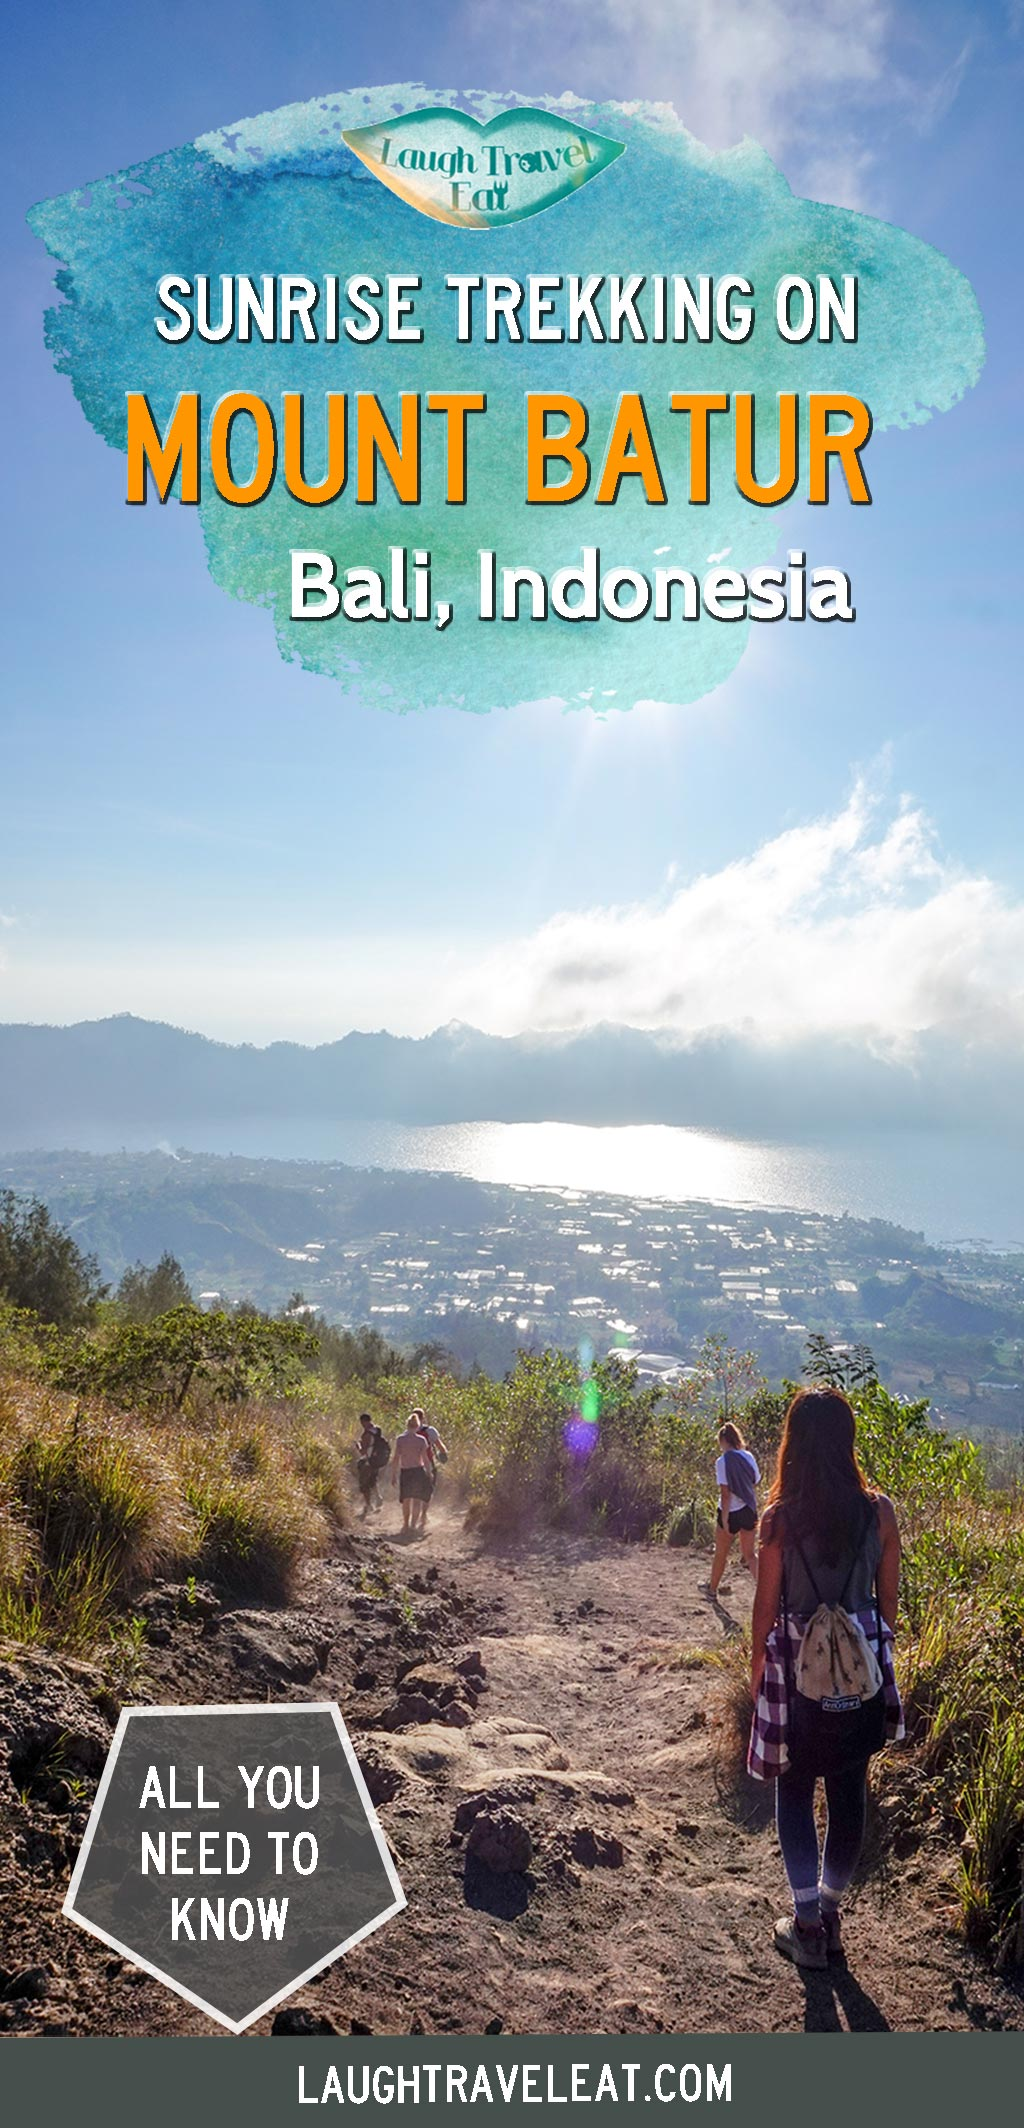 Mount Batur sunrise trek is one of the top activities to do for nature lovers in Bali. Here's the load down on what to expect: